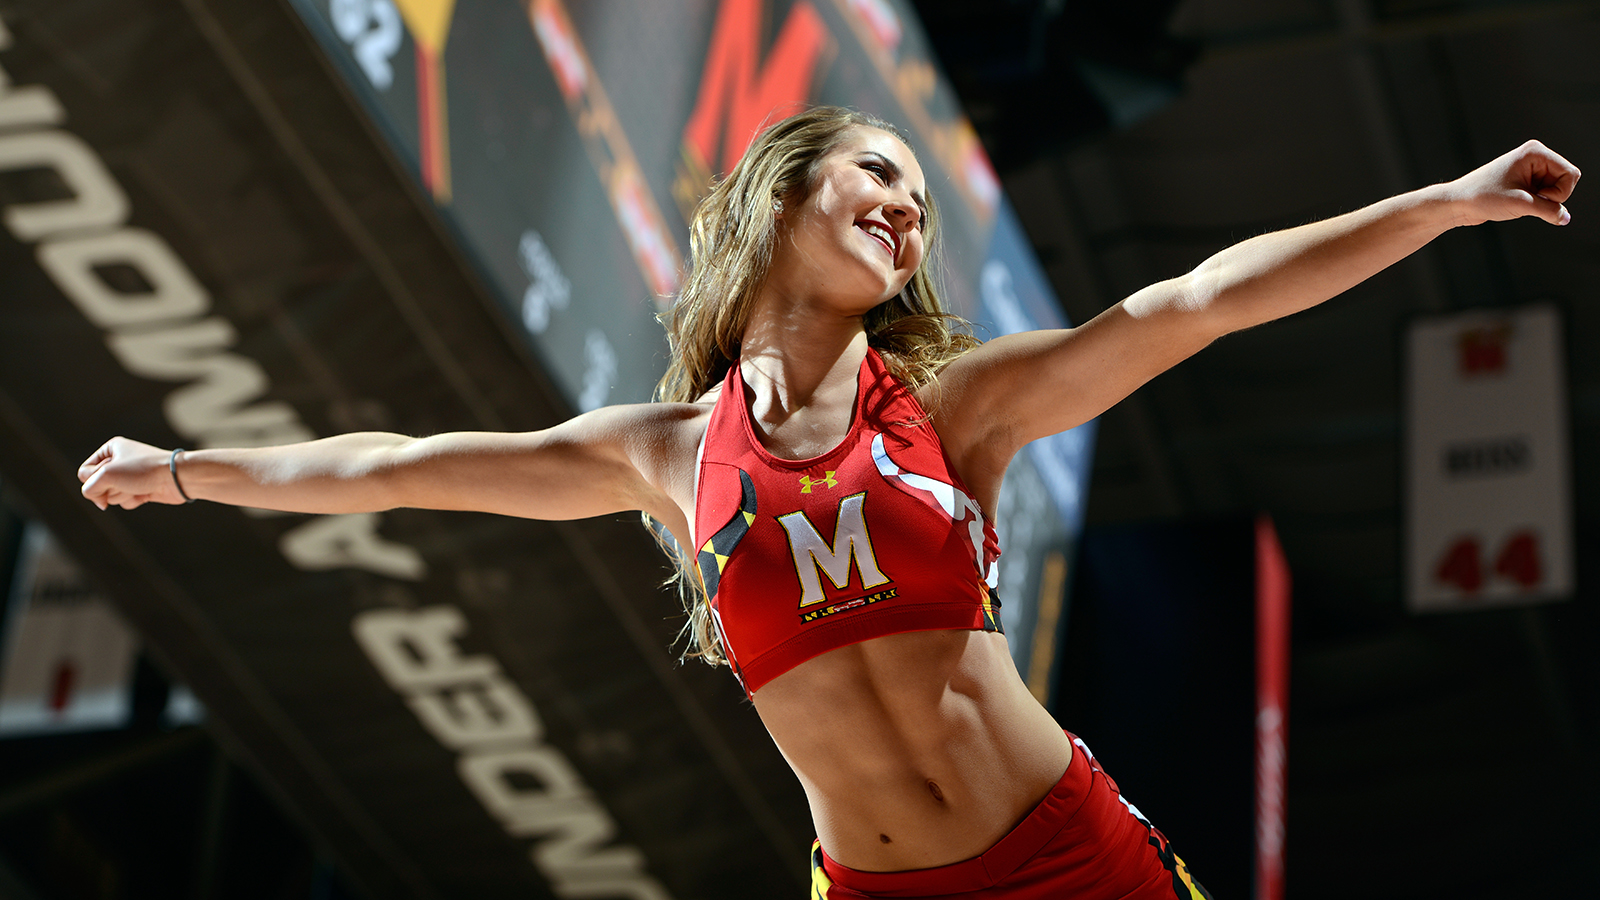 COLLEGE PARK, MD - JANUARY 24:  A Maryland Terrapins cheerleader performs during the game against the Rutgers Scarlet Knights at Xfinity Center on January 24, 2017 in College Park, Maryland.  (Photo by G Fiume/Maryland Terrapins/Getty Images)